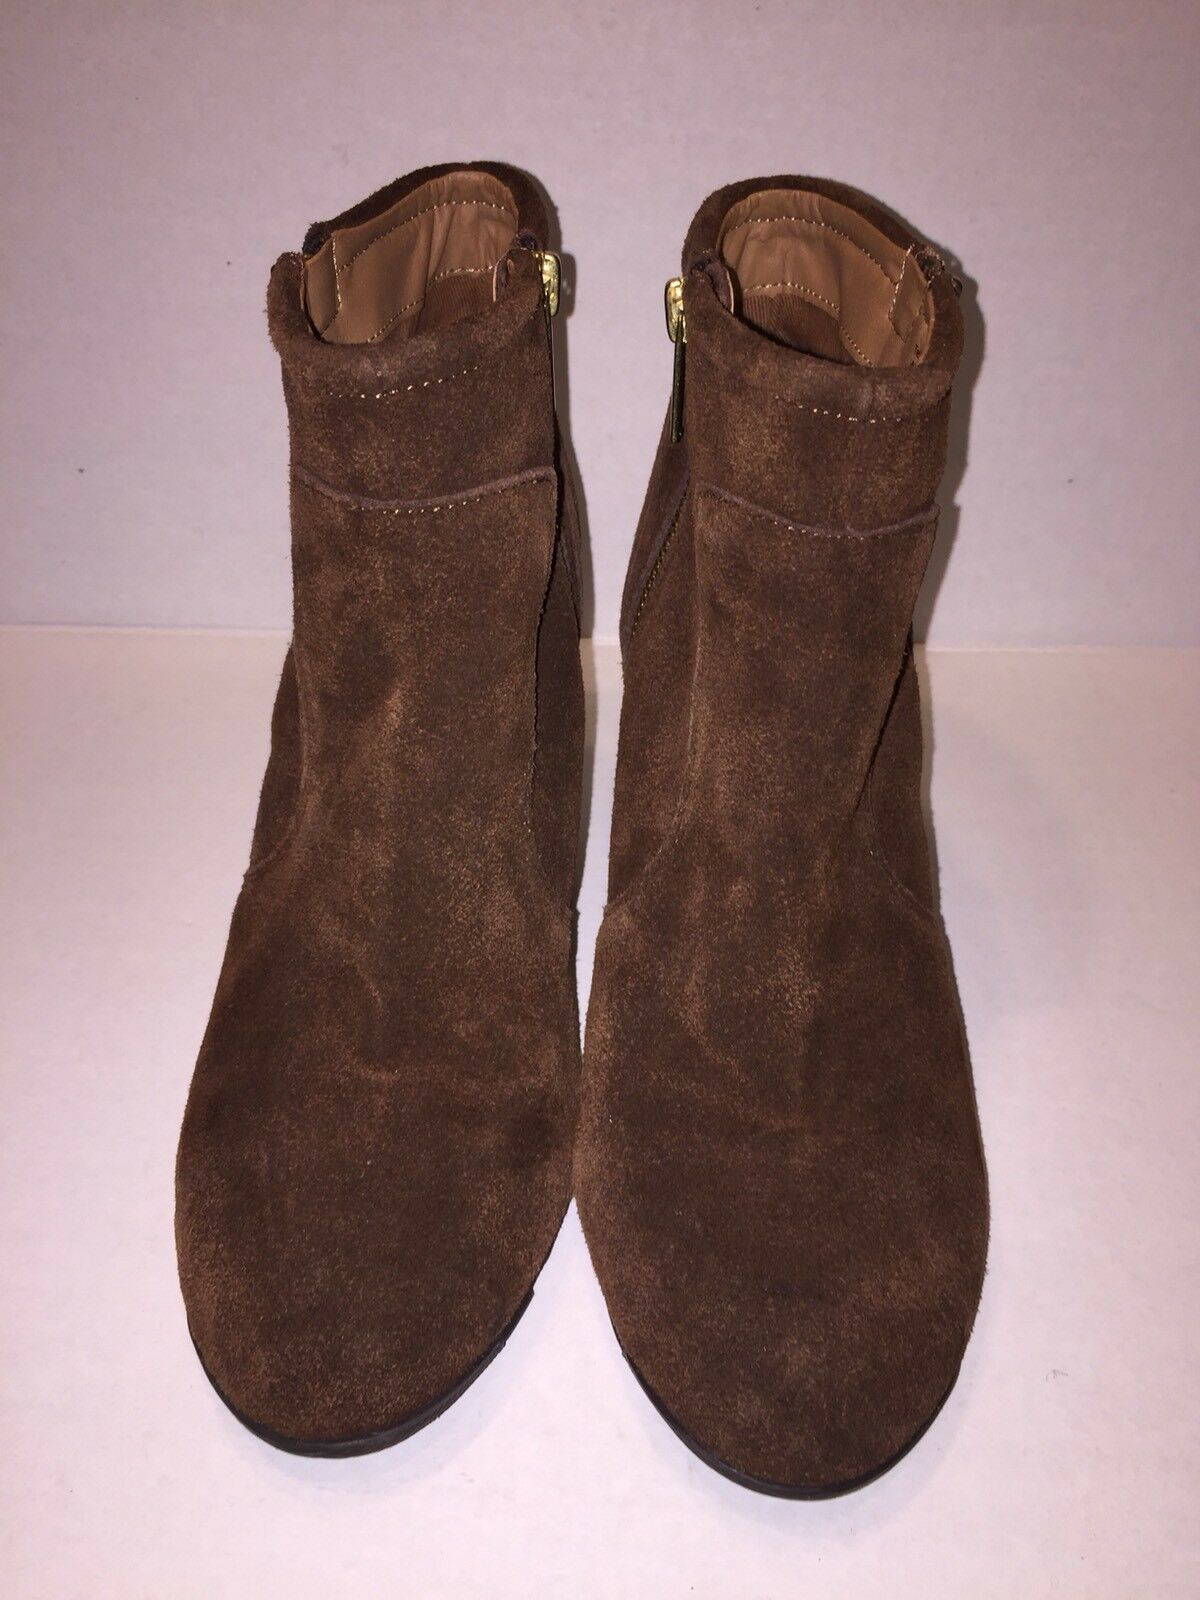 """Kenneth Cole Reaction Tell Lilly Pad Brown Suede Wedge Ankle Boots Sz. 8M 3.5"""""""